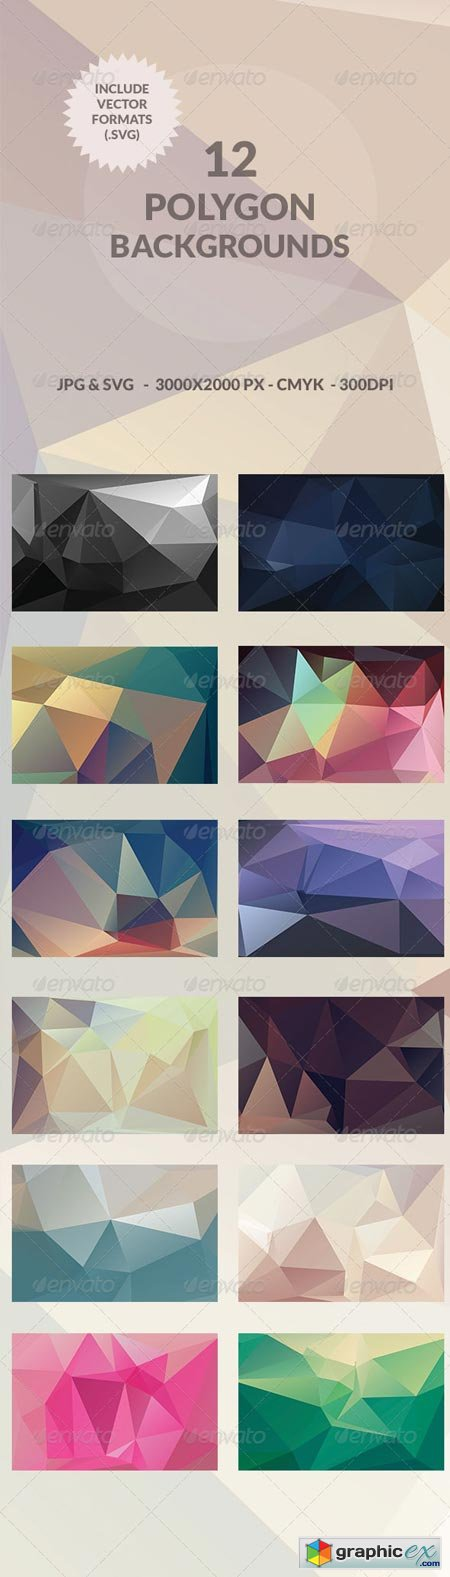 12 Polygon Abstract Backgrounds 7786615